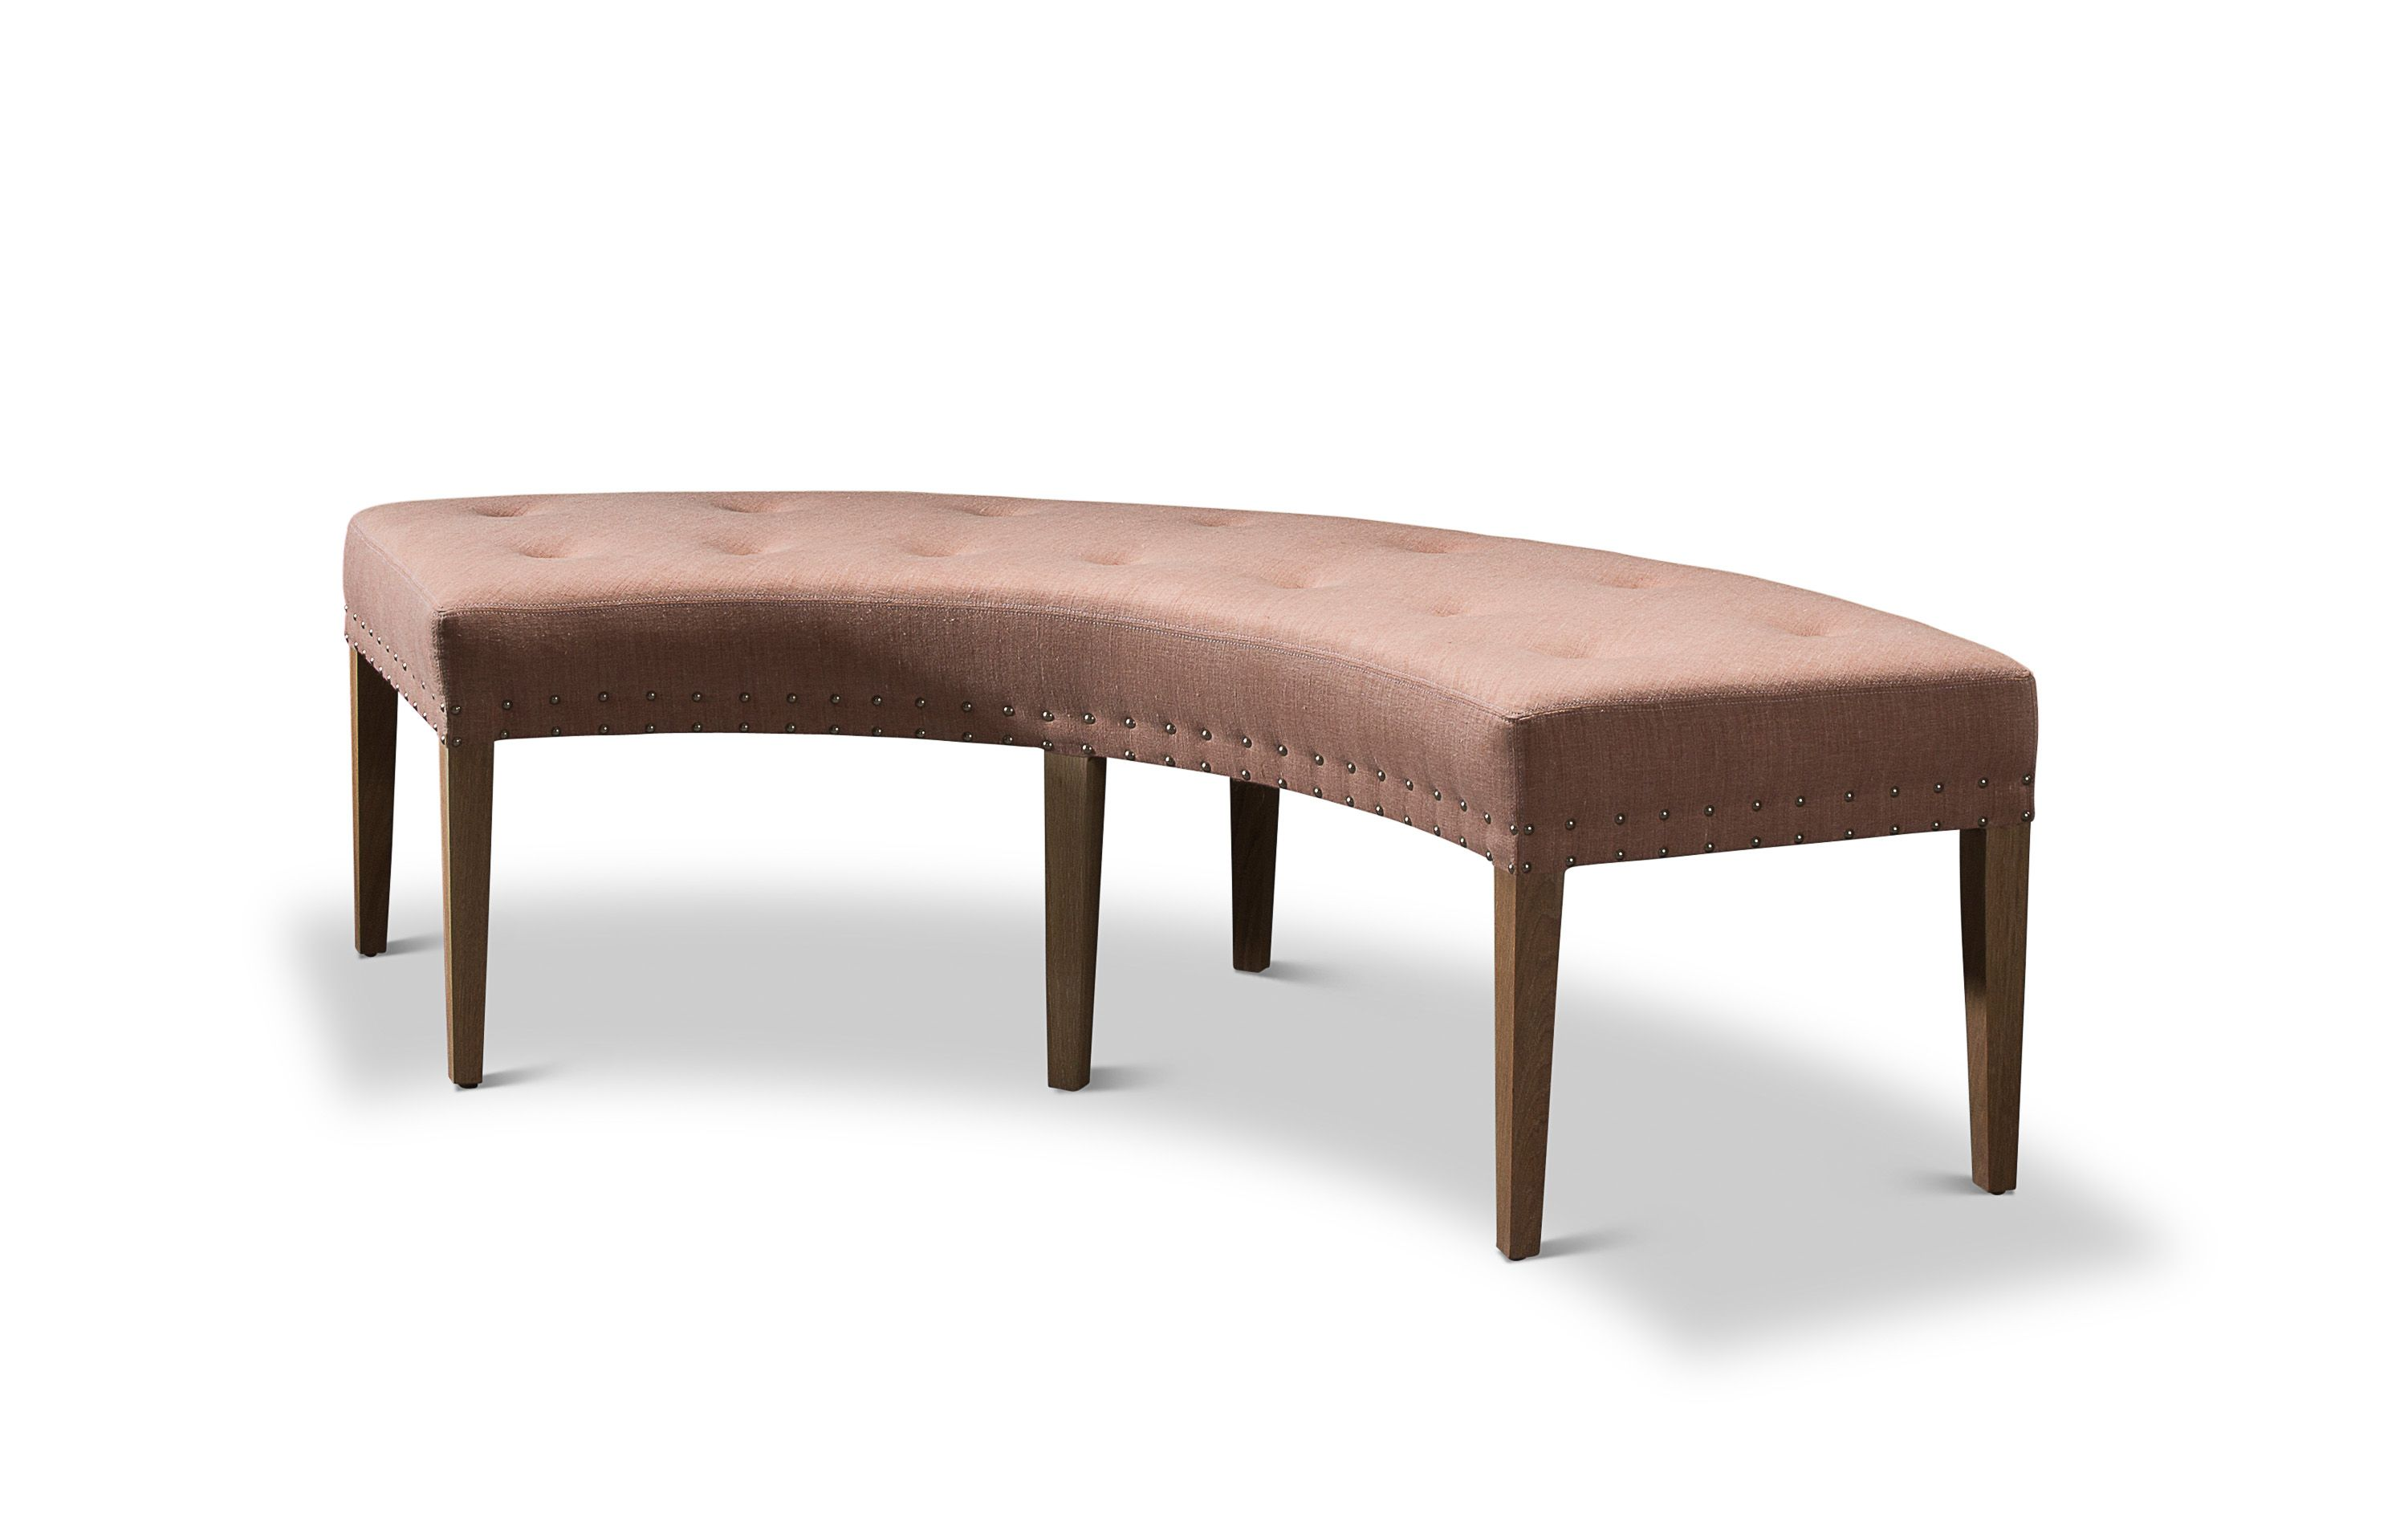 Maya curved dining bench by verellen sold at south of market in atlanta decor ideas Curved bench seating